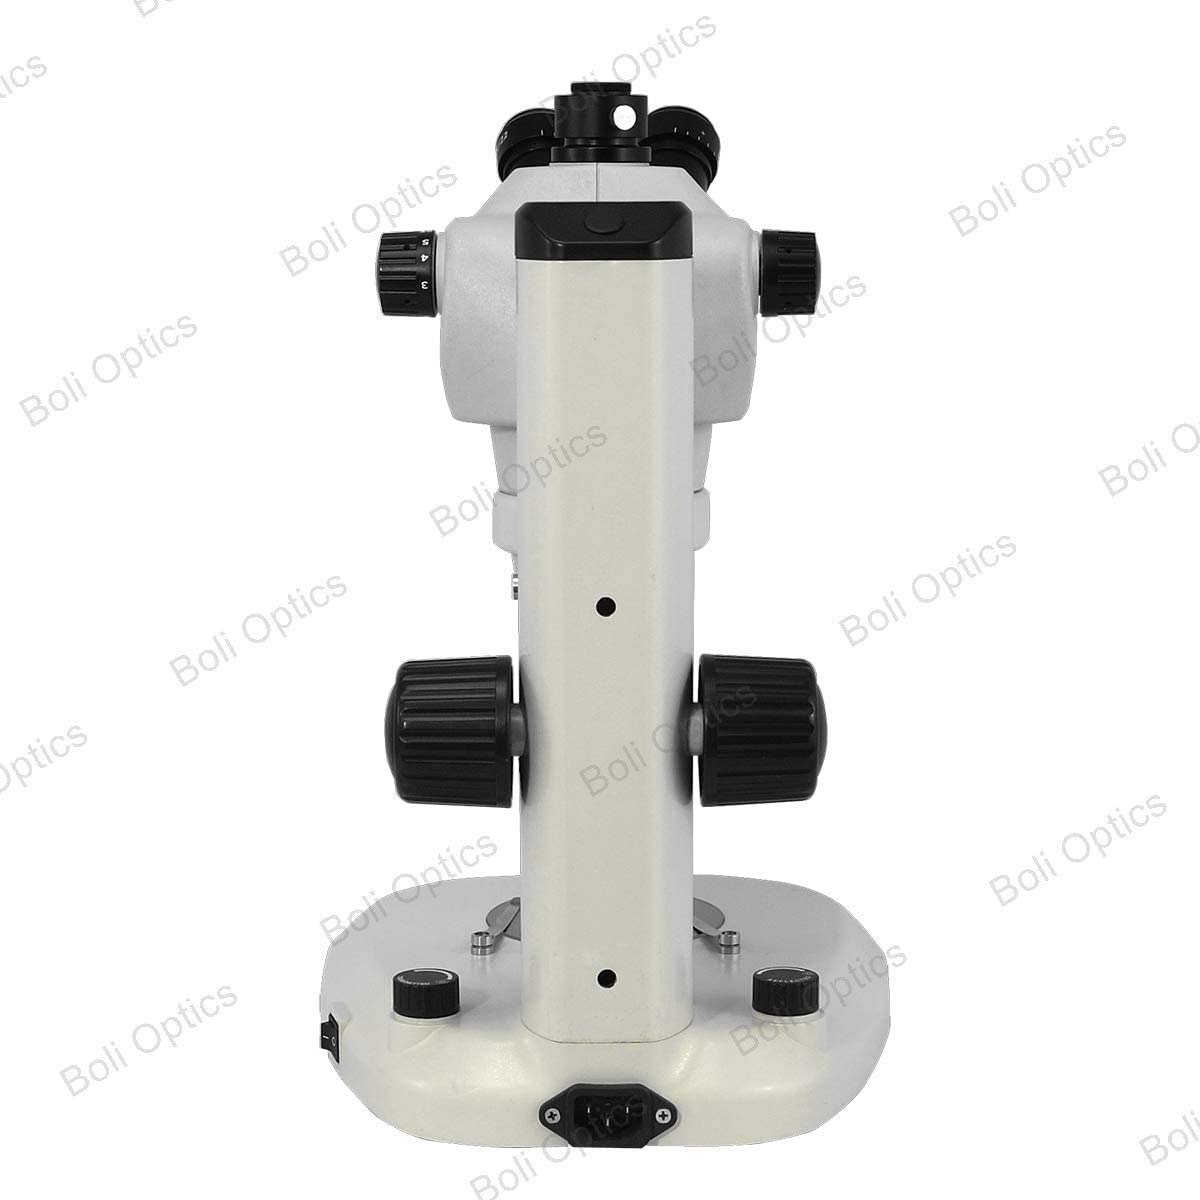 LED Top and Bottom Light Trinocular BoliOptics 8X-50X Widefield Zoom Stereo Microscope Fan Shaped Base Track Stand Track Length 280mm